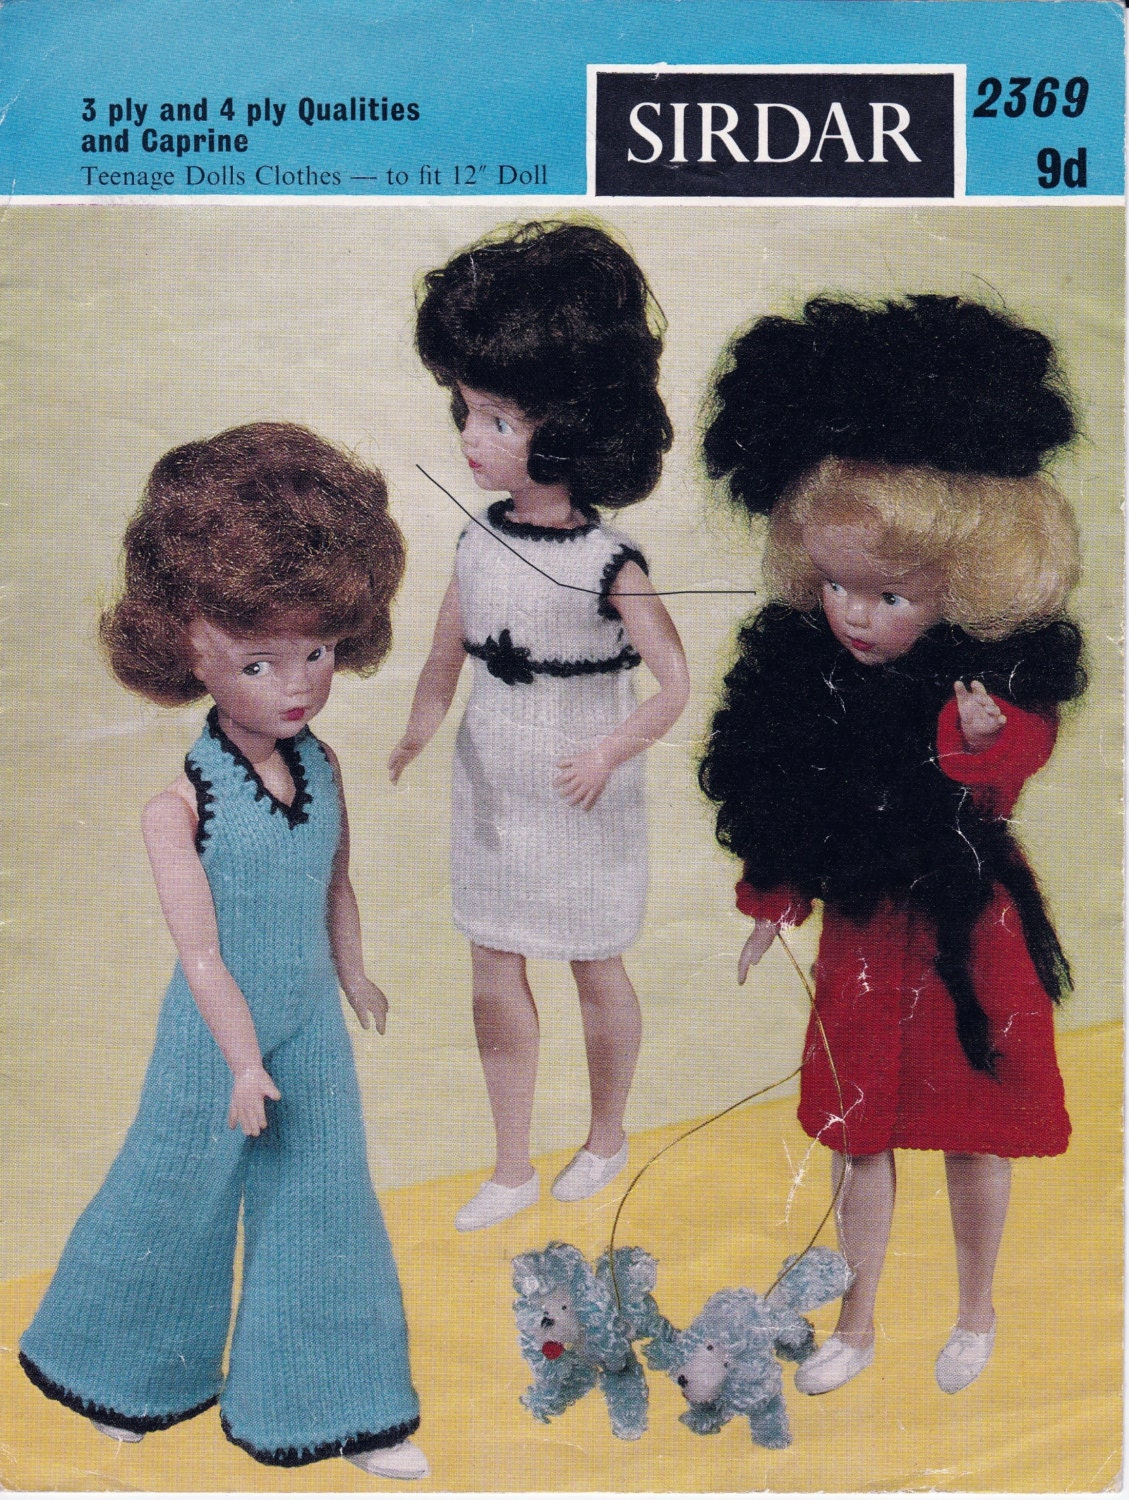 Sirdar Knitting Patterns For Dolls Clothes : Vintage Sirdar 2369 knitting pattern to fit 10